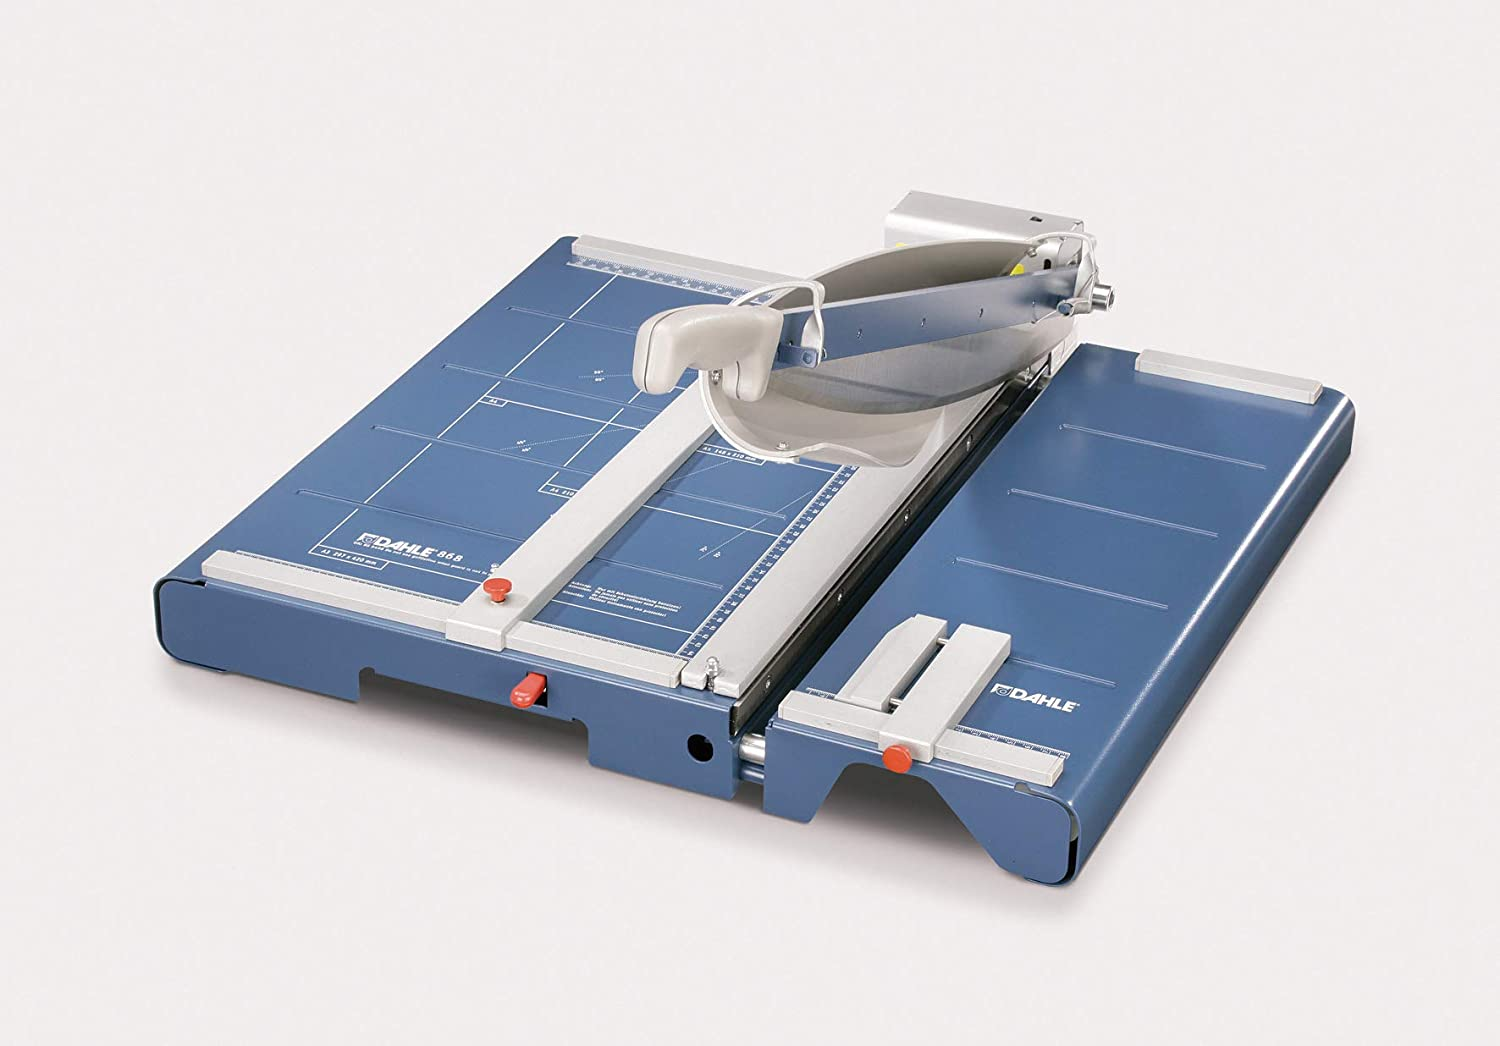 Dahle Office Equipment Lever Cutting Machine Dahle 868with Comfort Plus Features